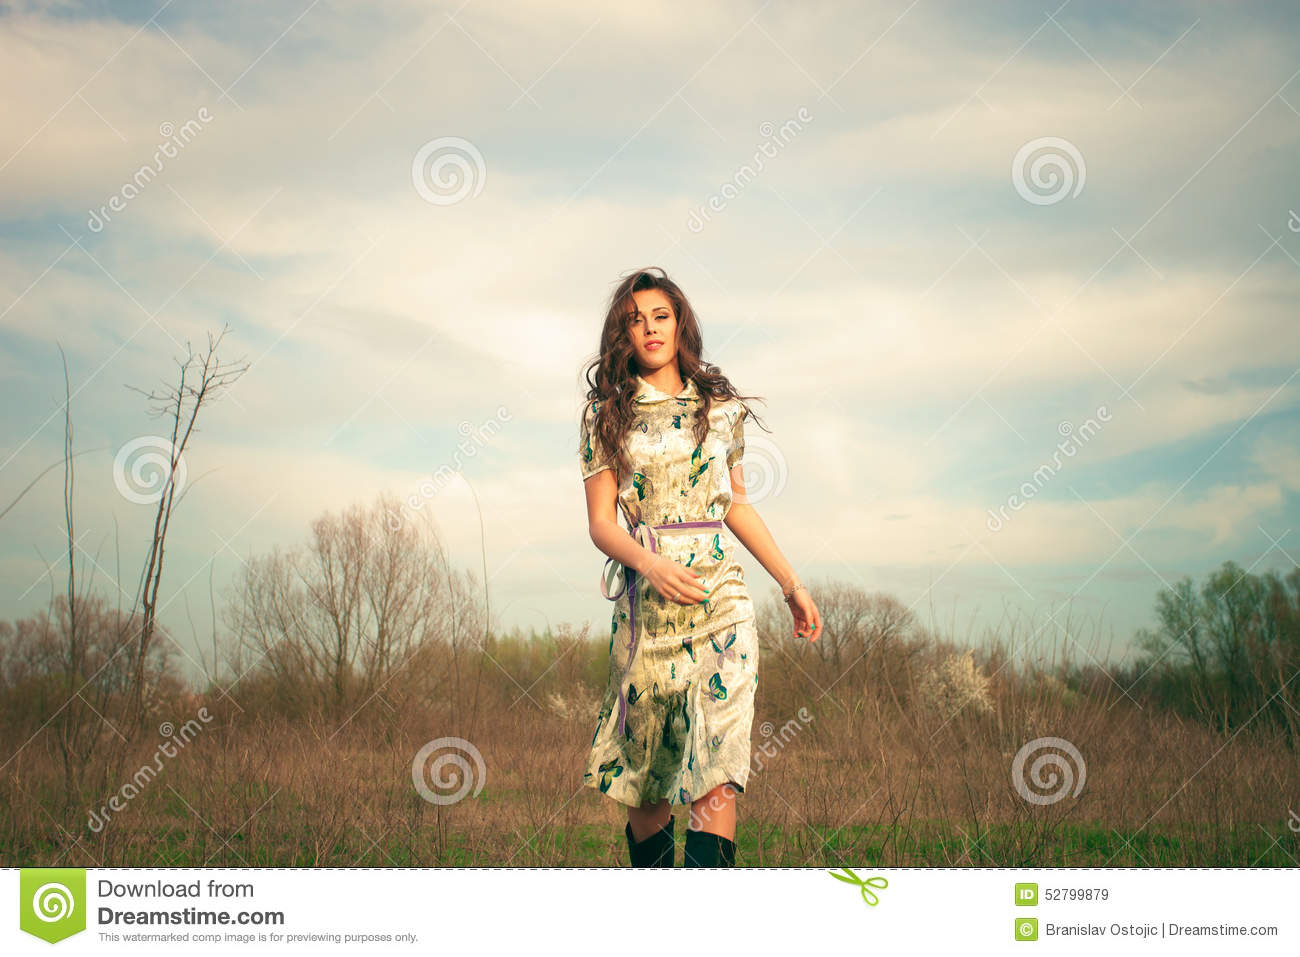 Download Run across the field stock image. Image of beauty, hair - 52799879